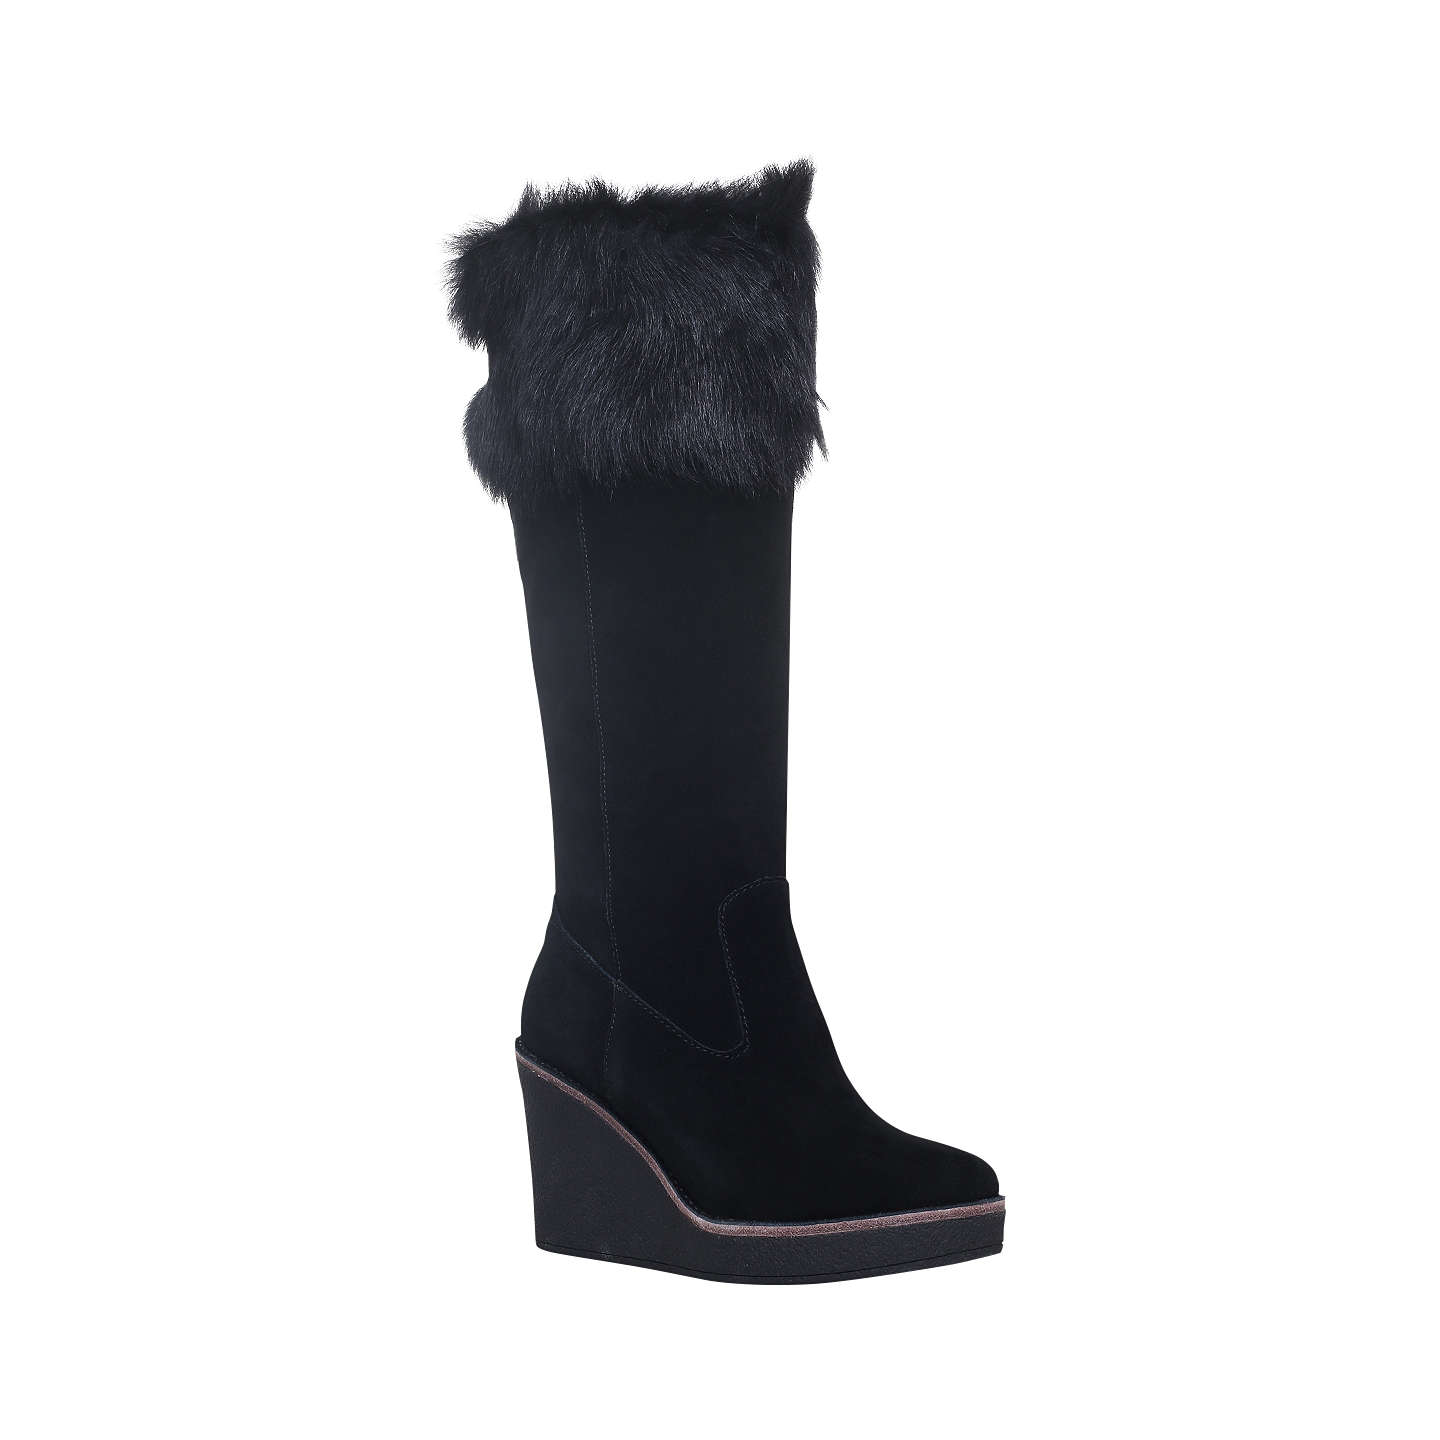 ugg wedge heel boots nz